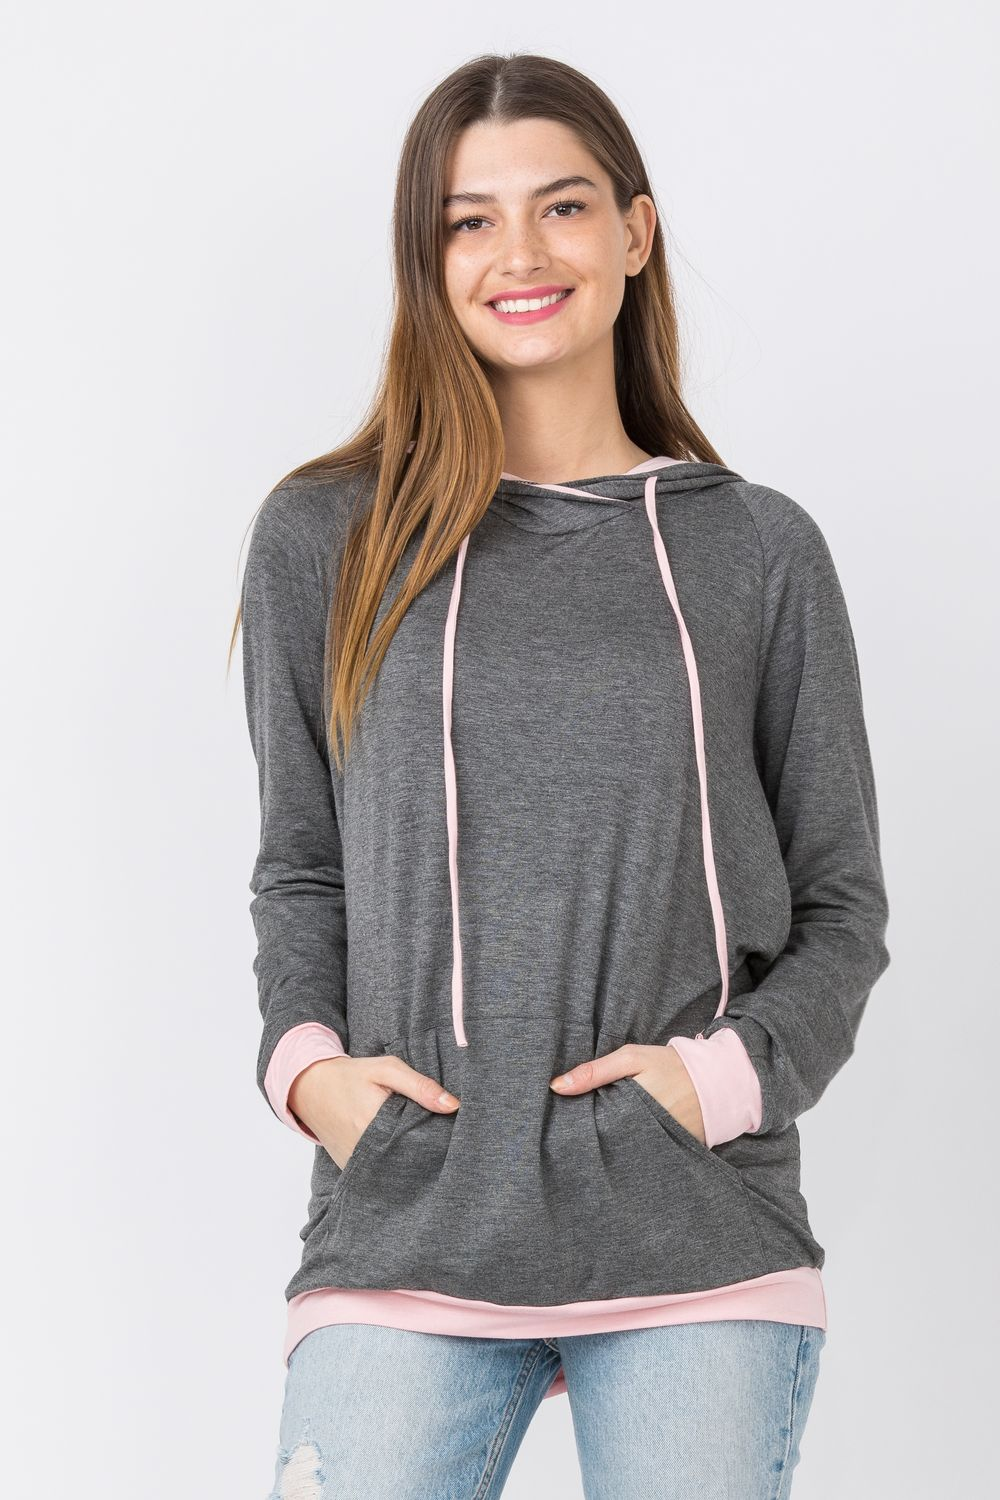 Charcoal & Pink Two Tone Hoodie Tunic with Kangaroo Pocket_Plus